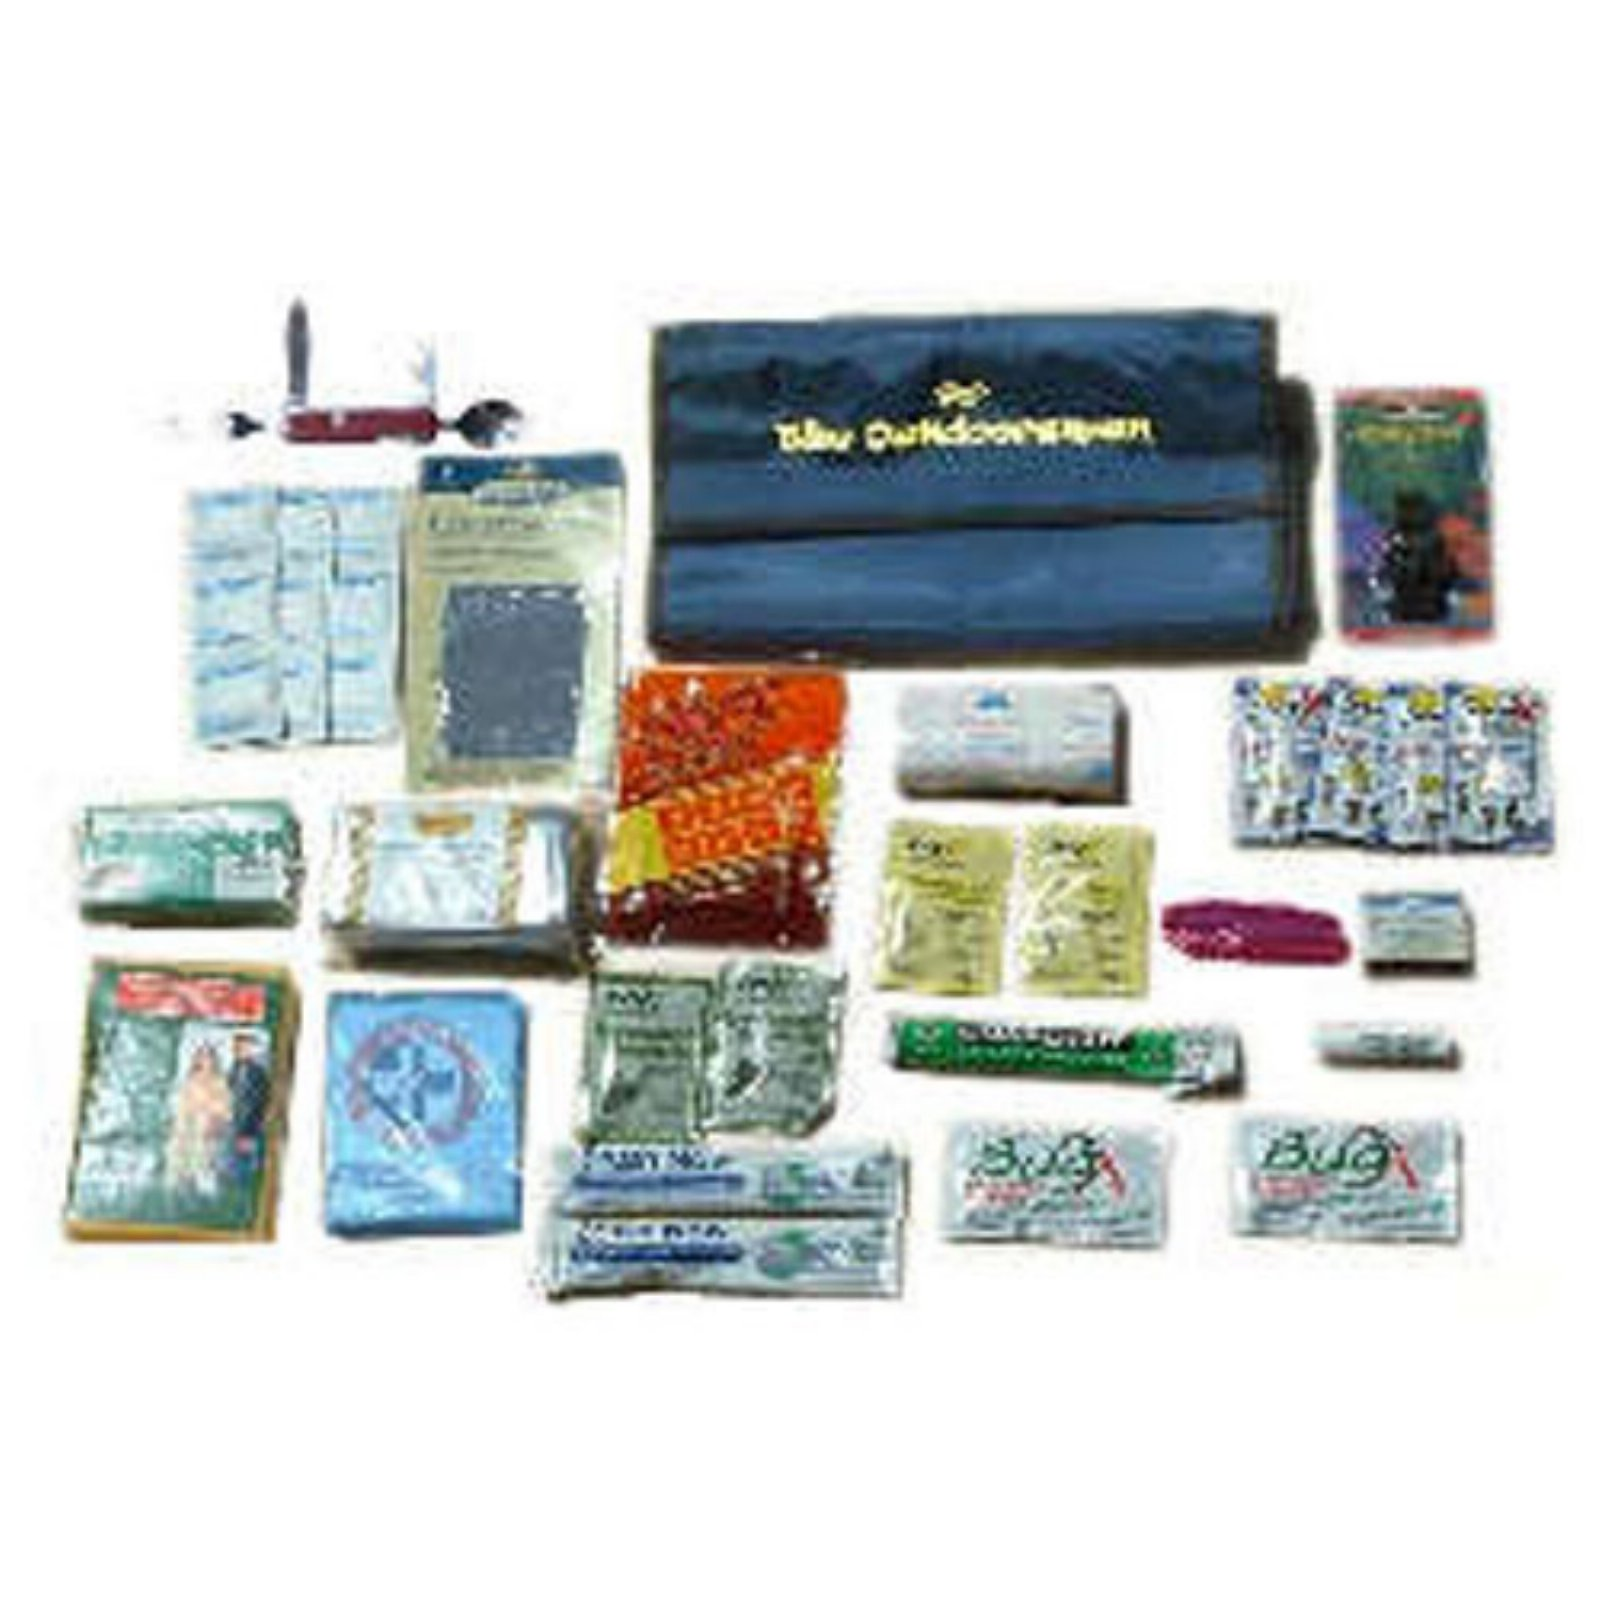 Mayday Outdoorsman Survival Kit 46 Pieces by MAYDAY